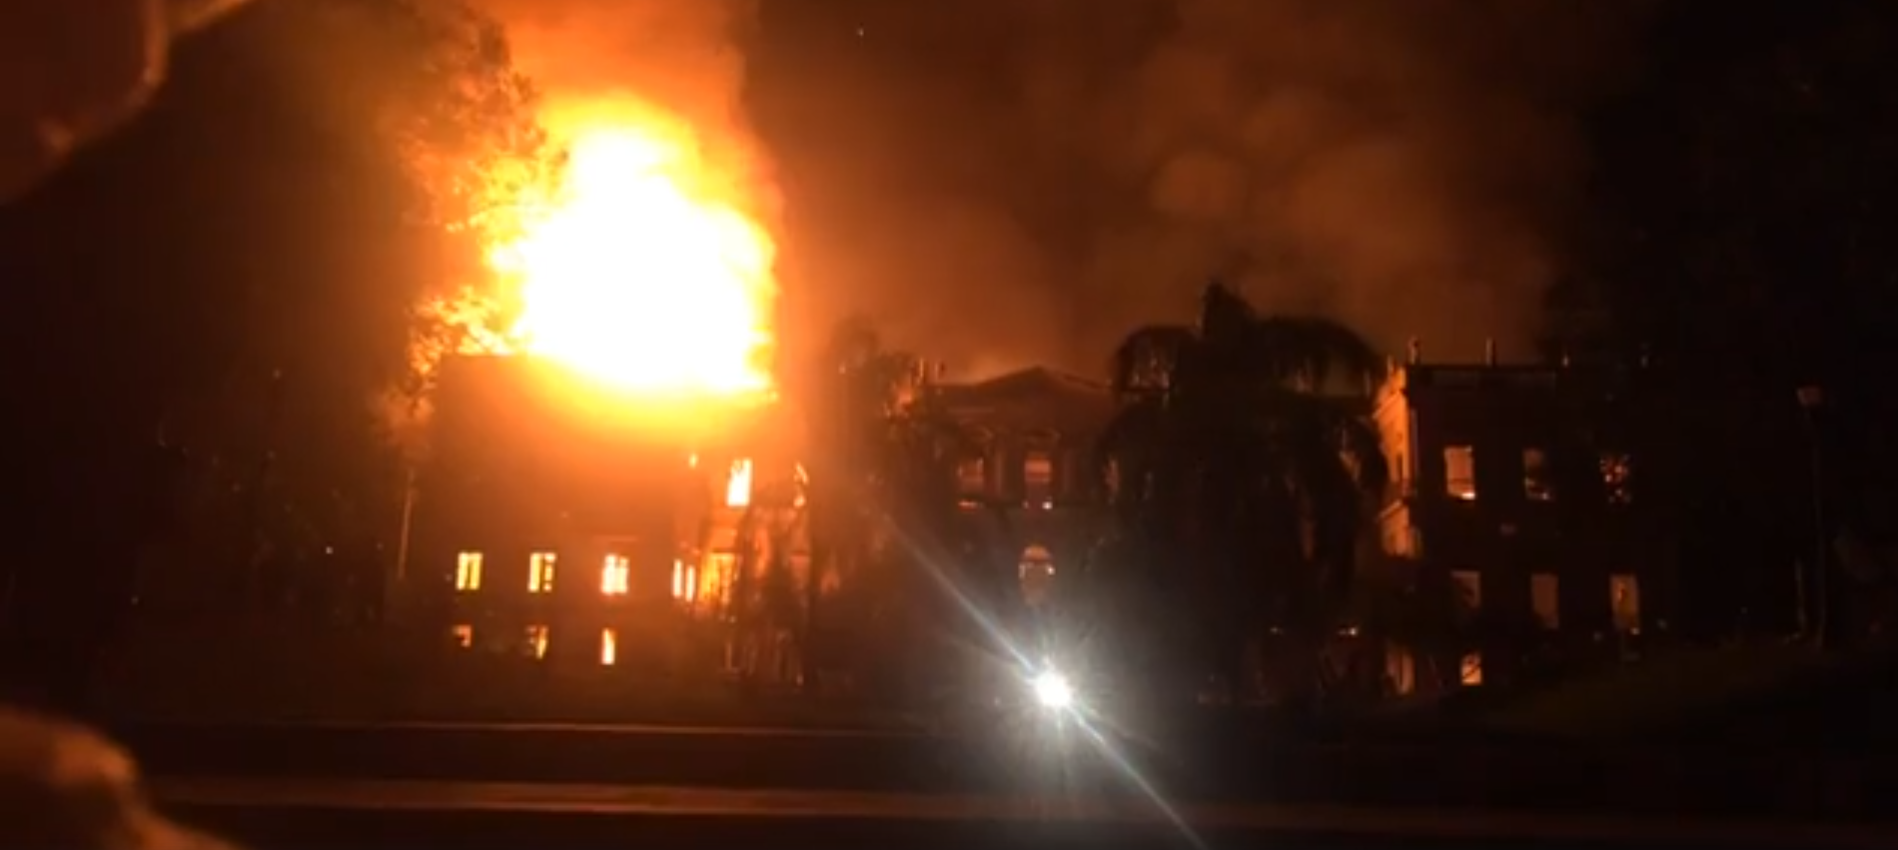 "Firefighters tried to put out the fire at the National Museum for hours. The lack of water was a problem | Image: Screenshot from Felipe Milanez's <a href=""https://www.facebook.com/felipe.milanez/videos/2356922267666421/"">Facebook live </a>"